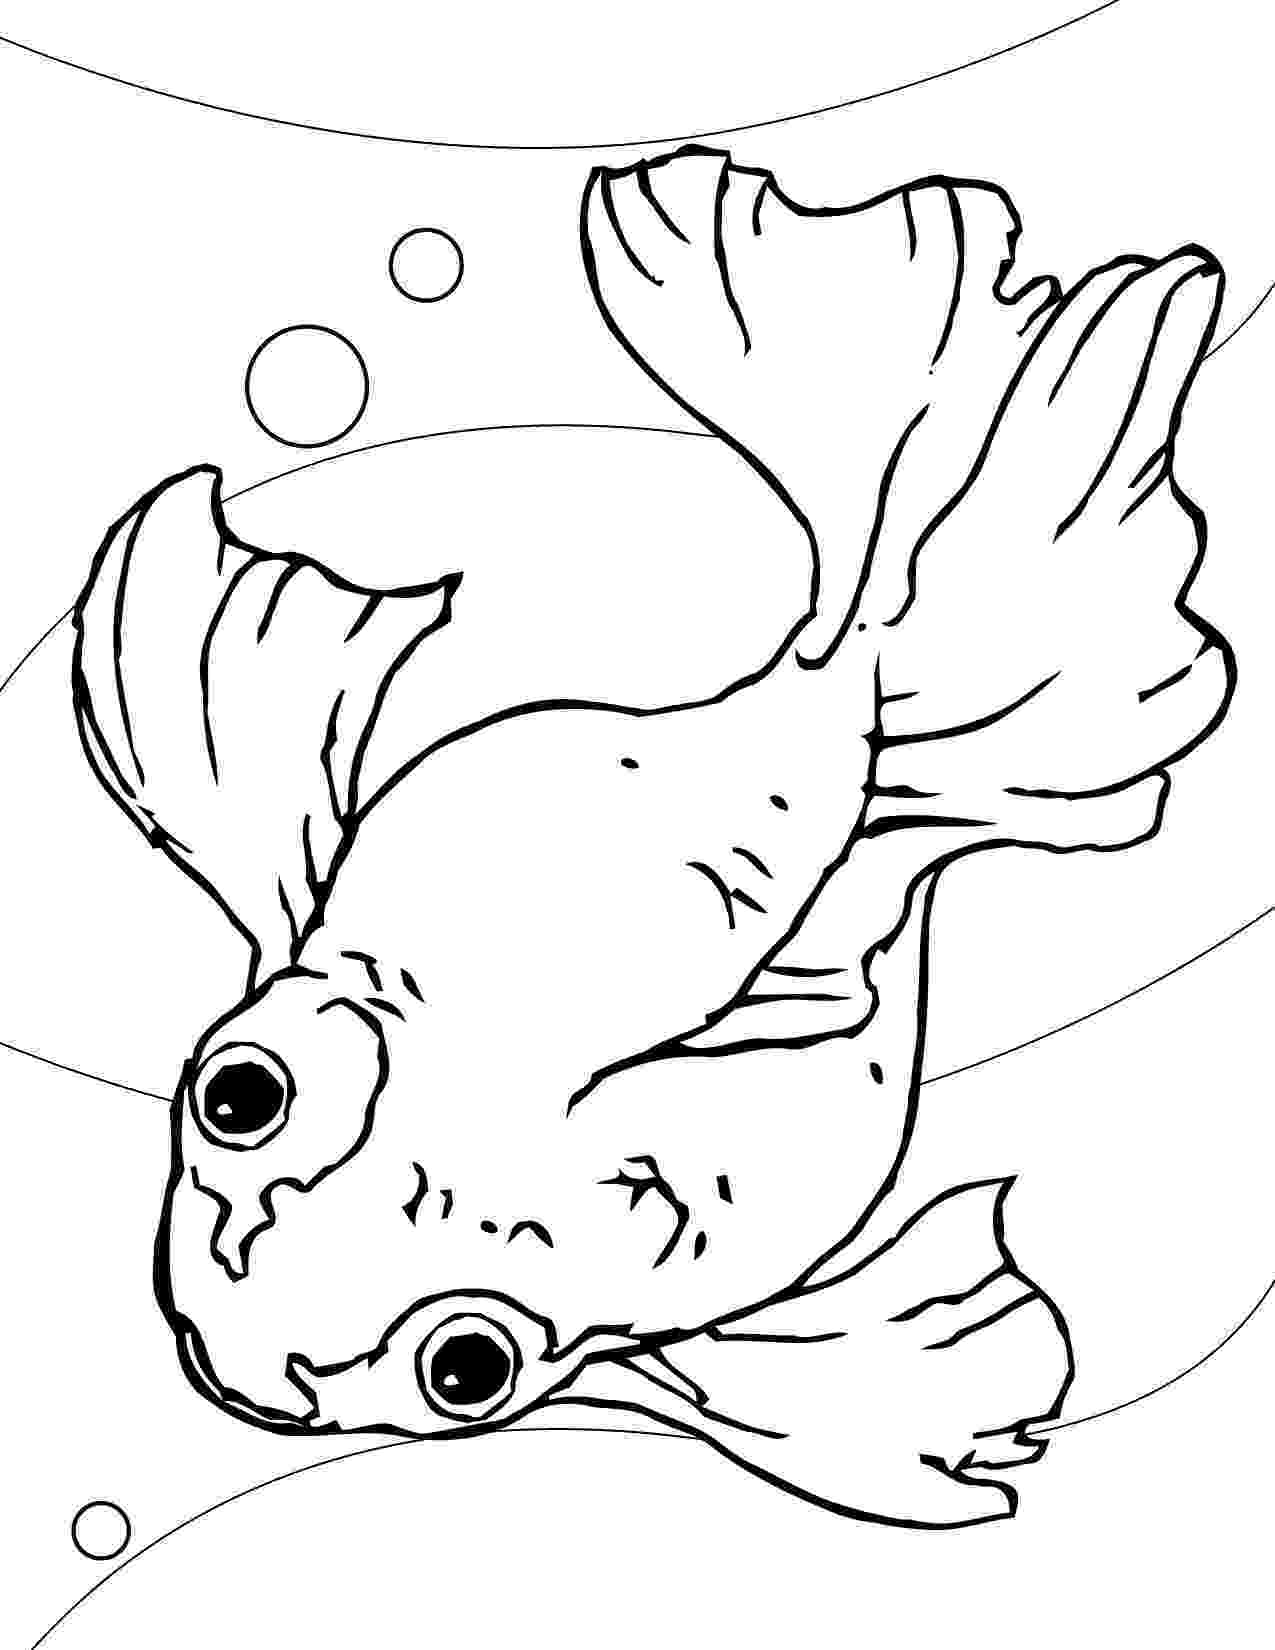 coloring pages of goldfish free printable goldfish coloring pages for kids pages goldfish coloring of